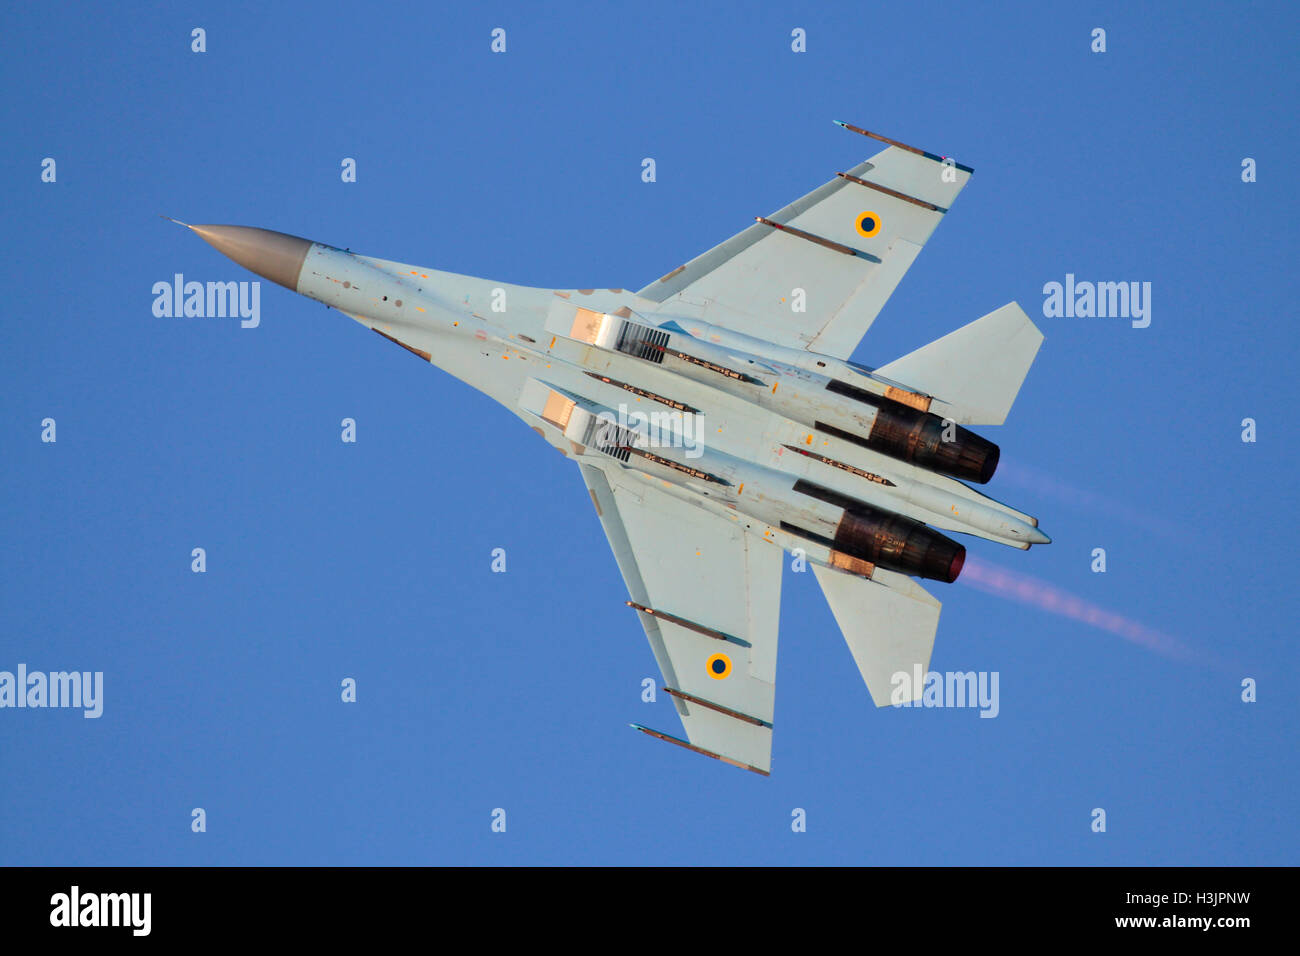 Military aviation. Underside view of a Ukraine Air Force Sukhoi Su-27 Flanker fighter jet plane flying with afterburners - Stock Image